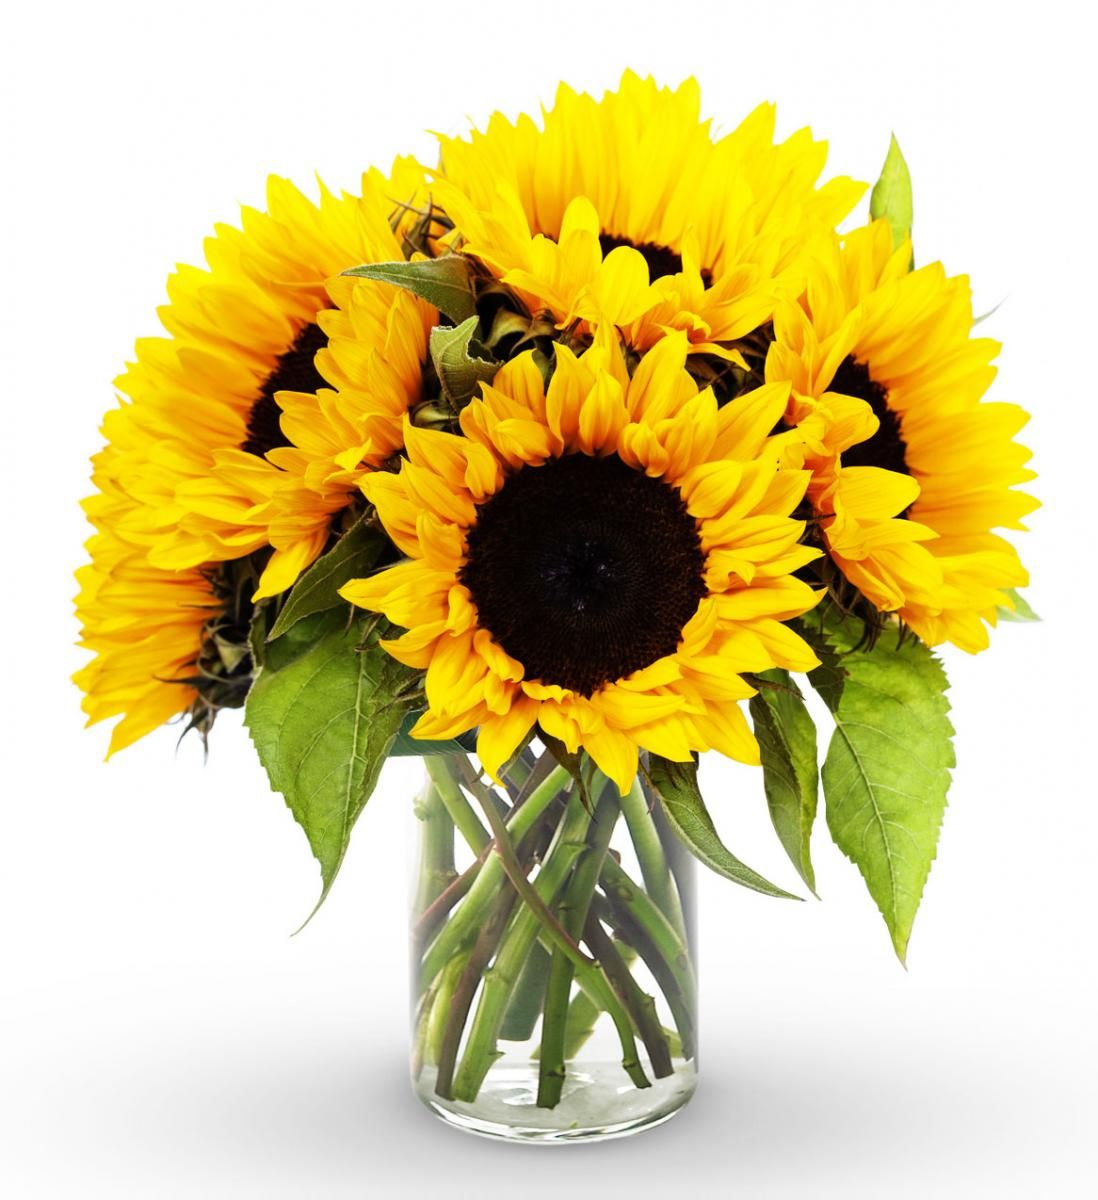 North Dakota Florists Amp Flowers Avas Flowers Sunflower Bouquets Avas Flowers White Rose Bouquet